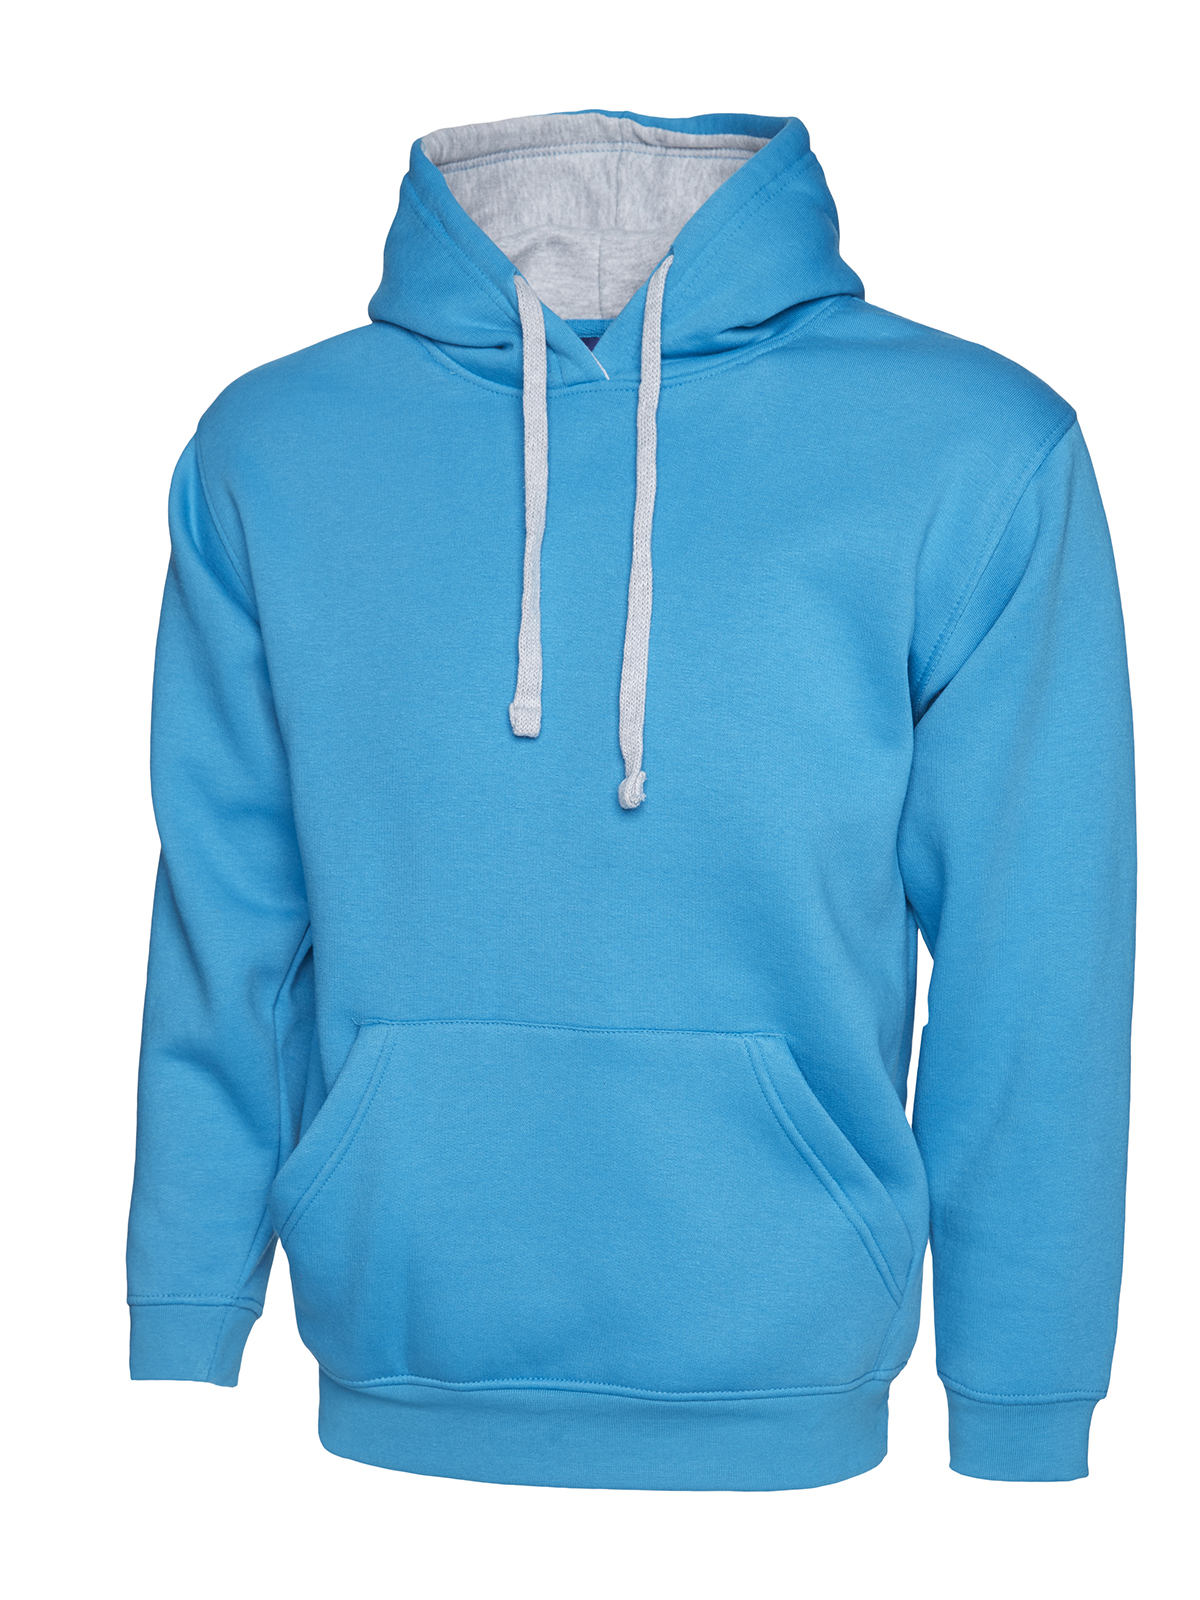 Uneek UC507 Contrast Hooded Sweatshirt C